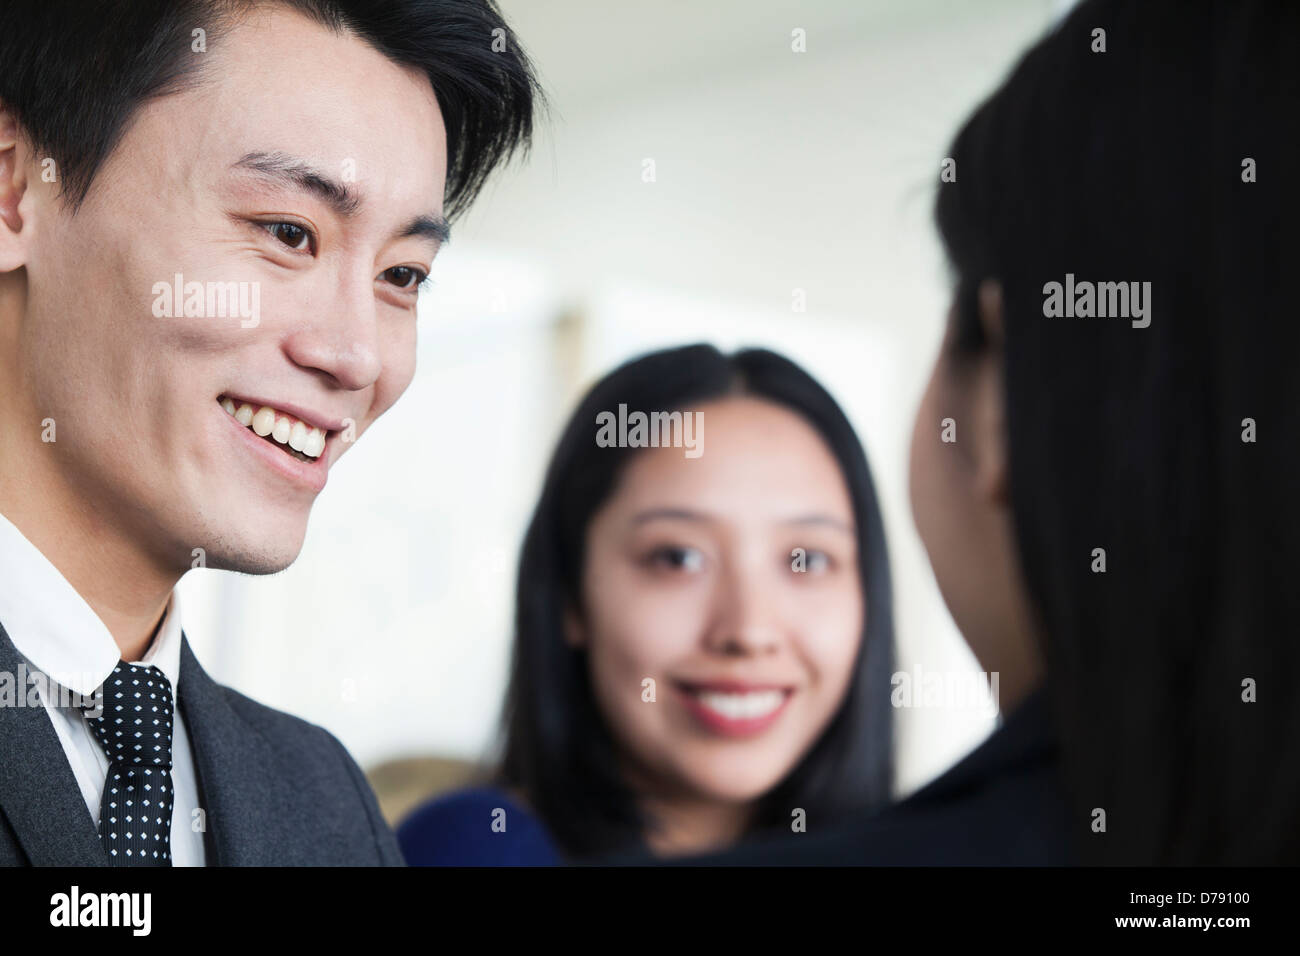 Co-workers talking in office - Stock Image